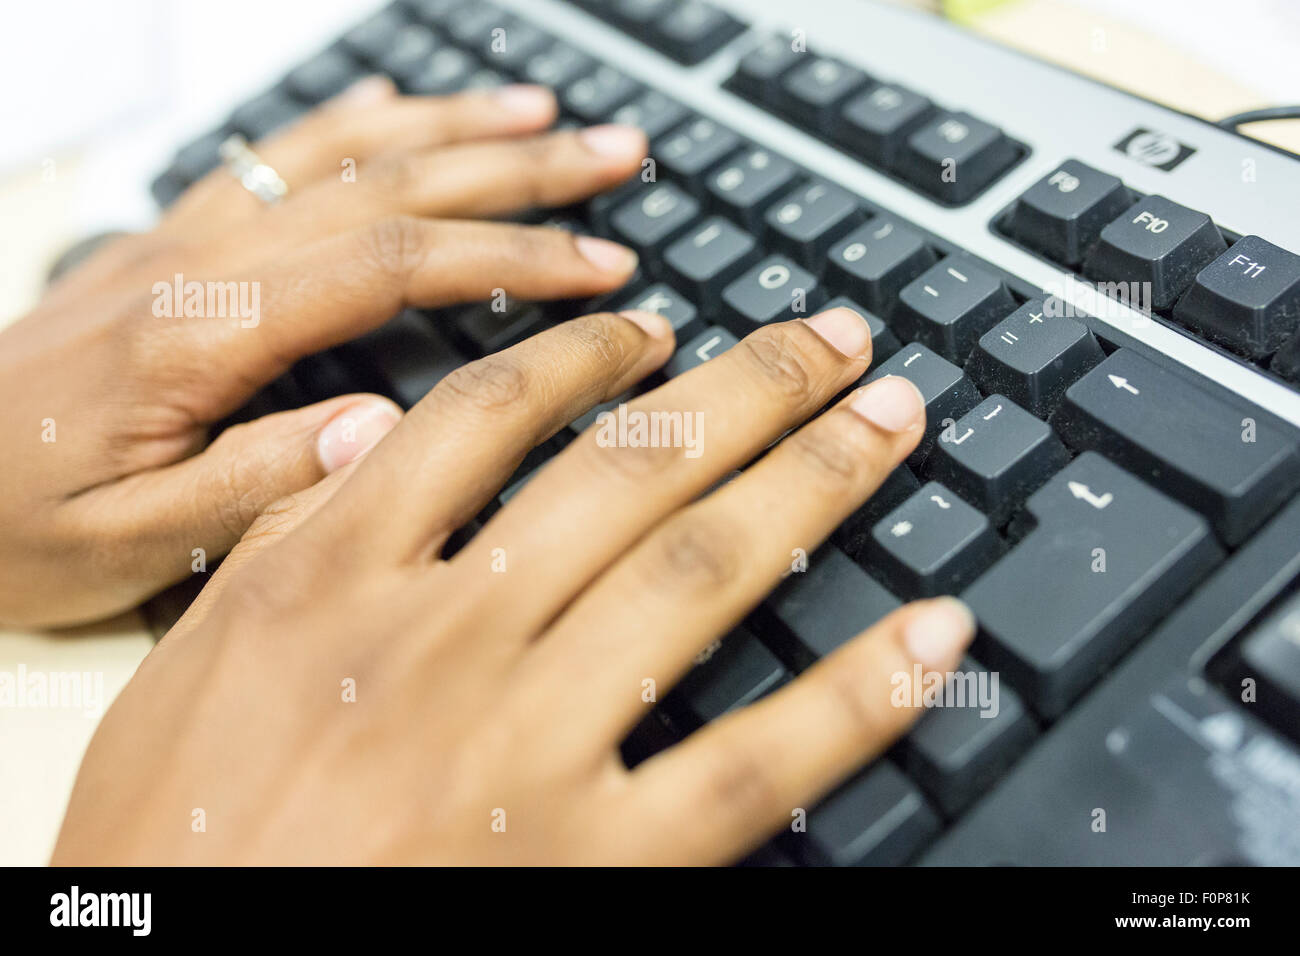 hands on a computer keyboard - Stock Image